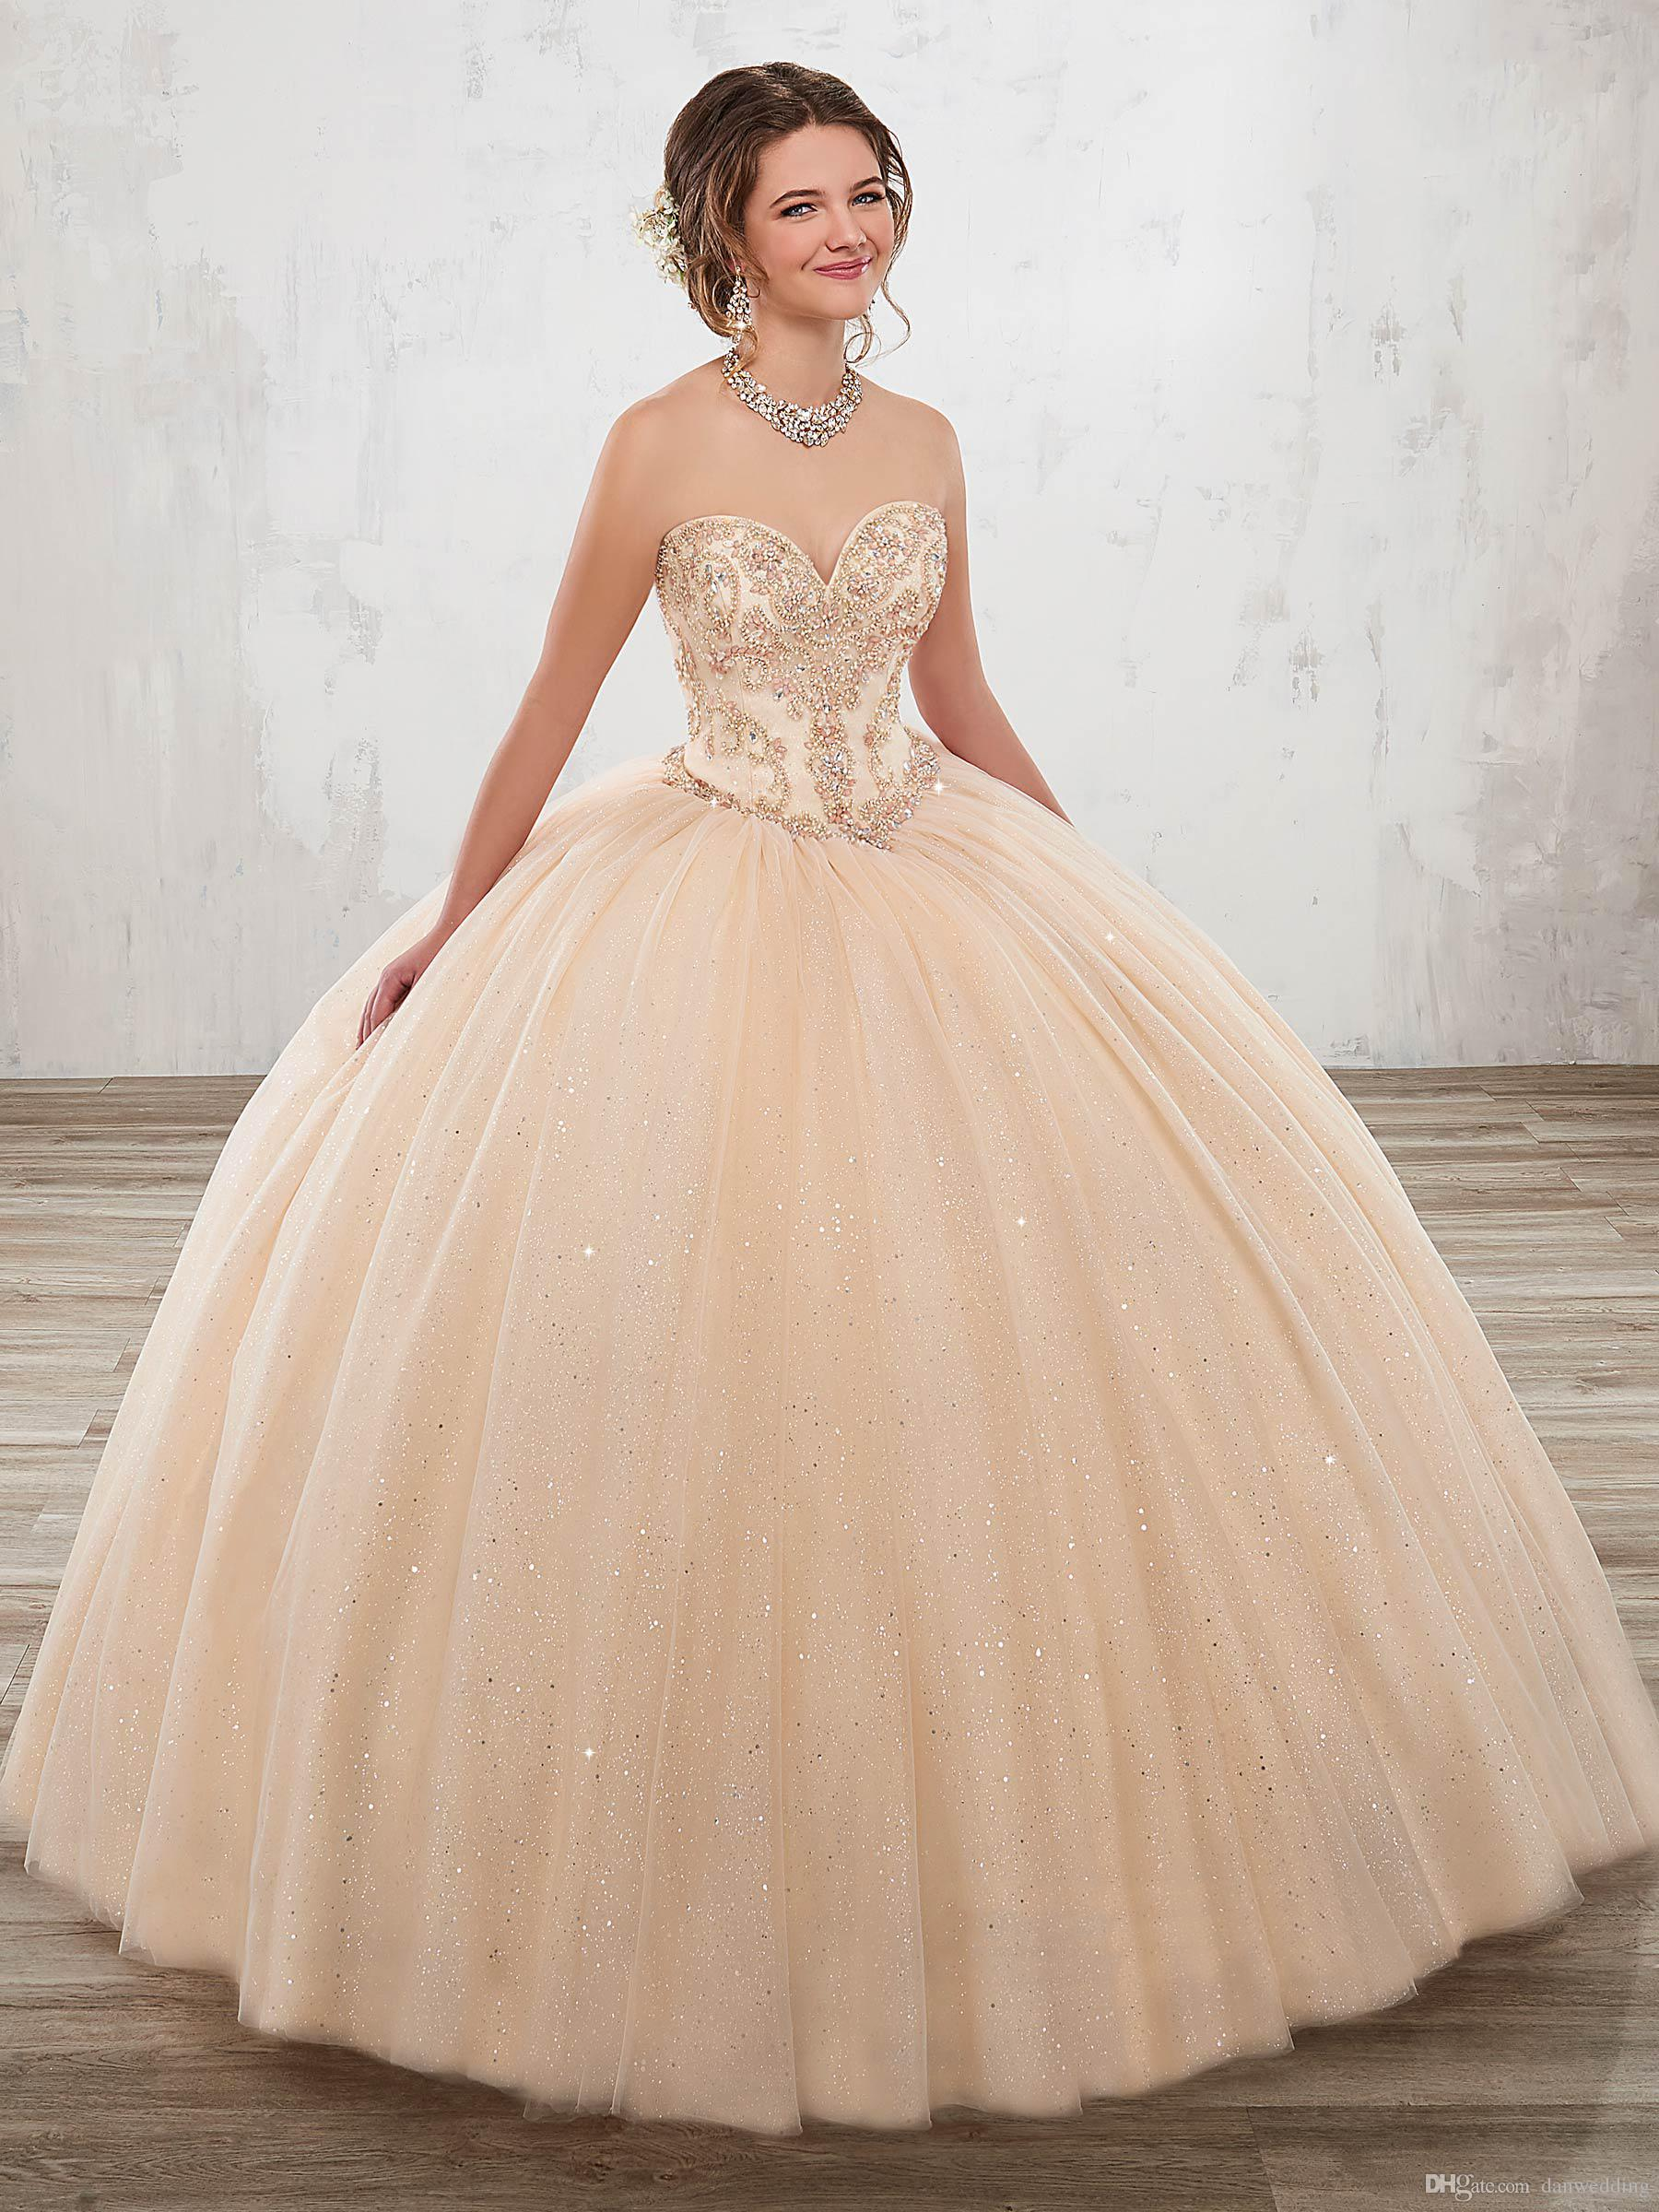 50f1cbf4cfa Princess Champagne Tulle Sweetheart Beads Quinceanera Dresses Special  Occasion Party Dresses Dance Prom Dresses Custom Size 2 18 KF1229343 White  Quinceanera ...